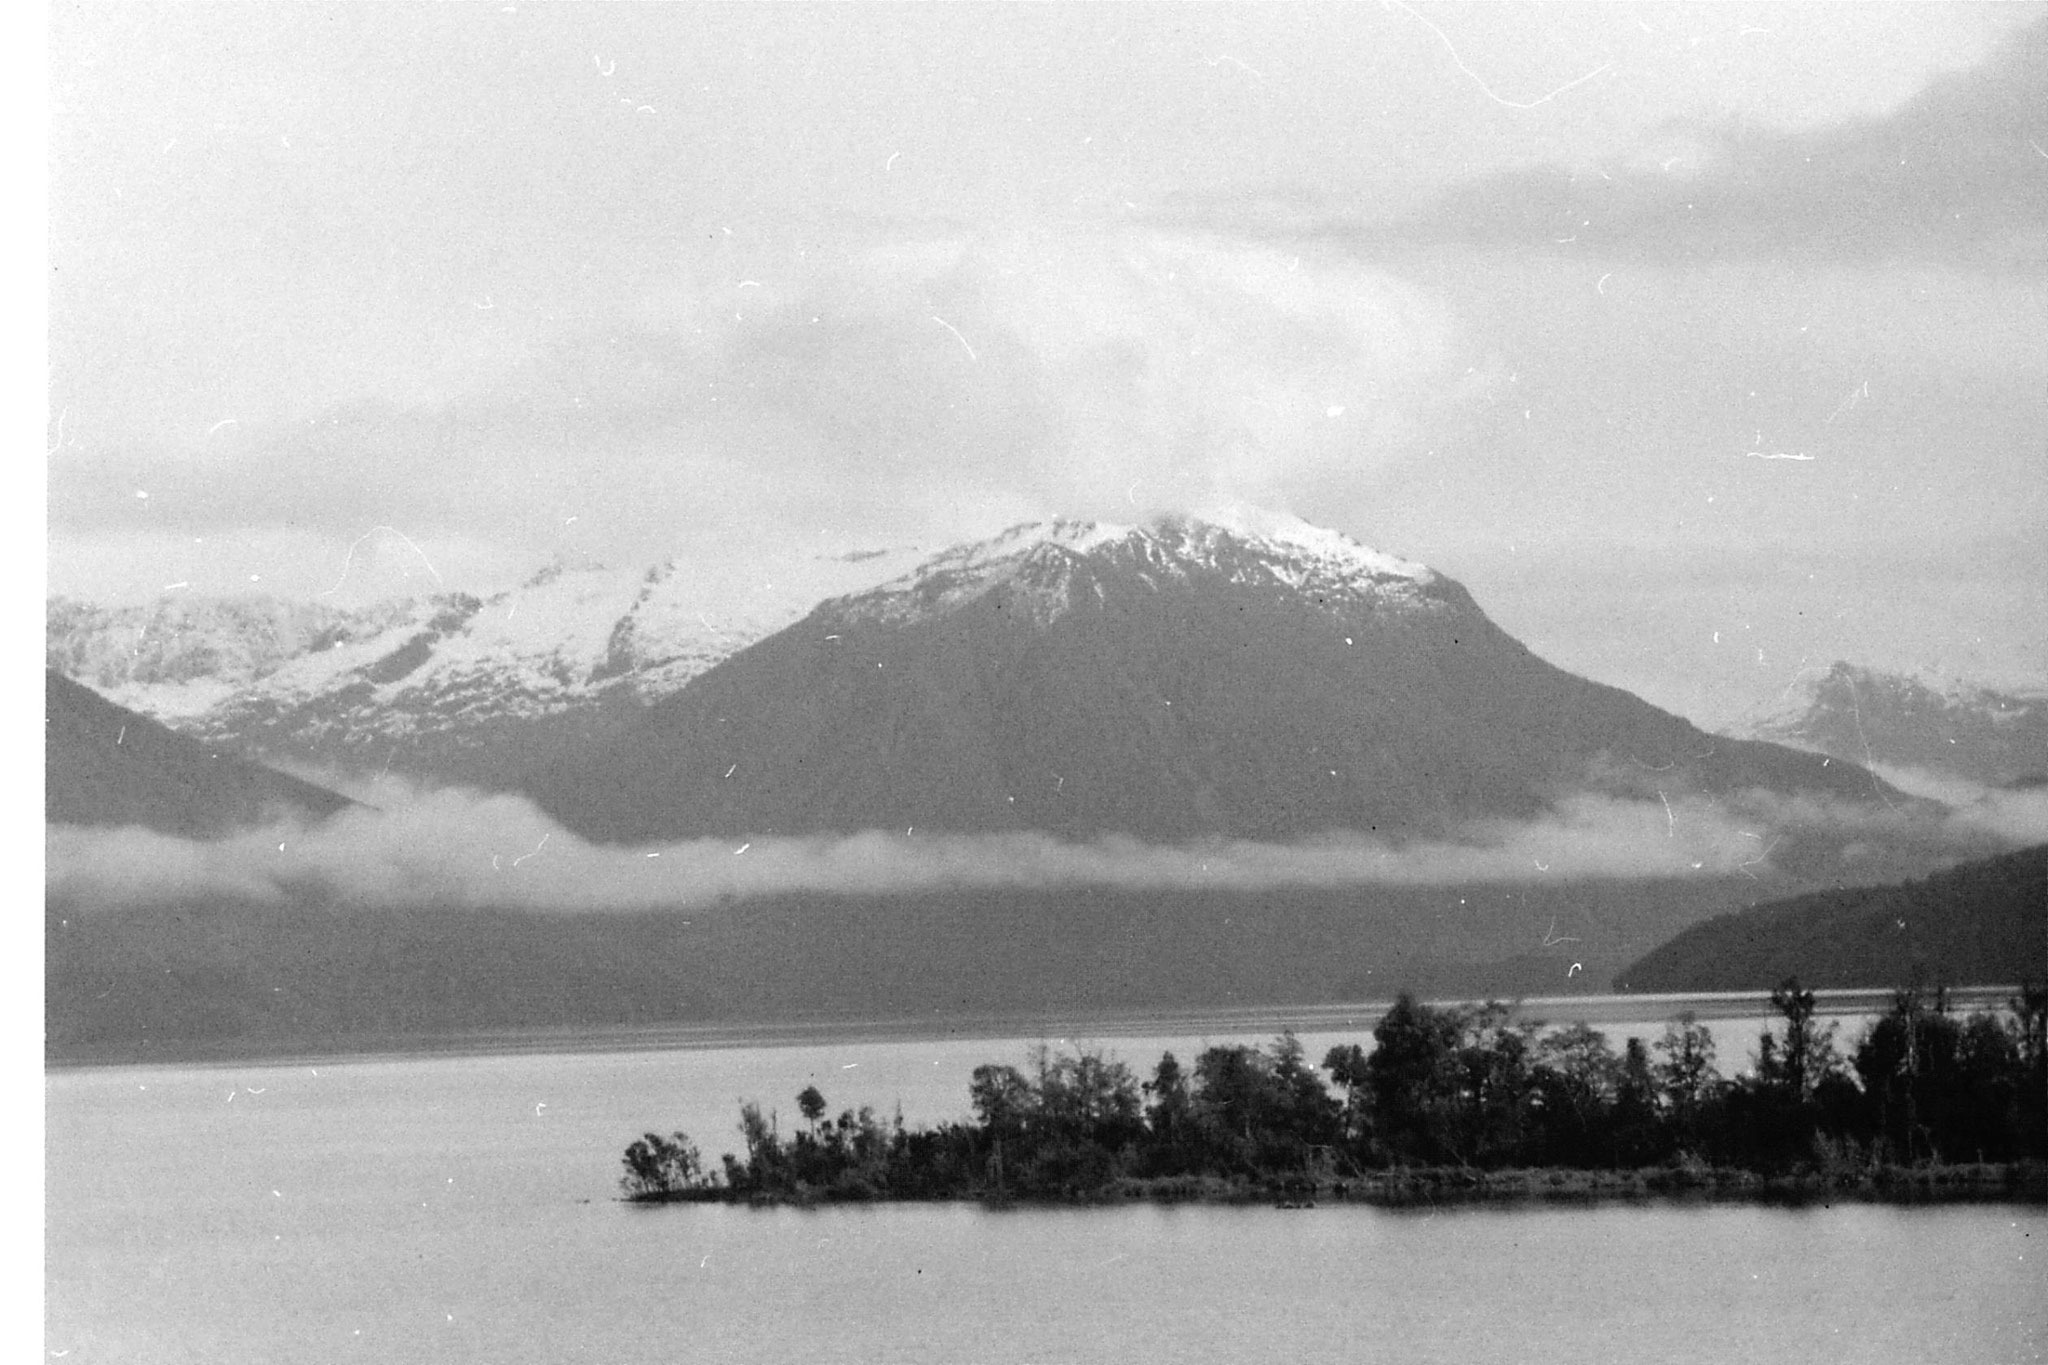 14/8/1990: 12: Murchison Mts from Te Anau across Te Anau Lake